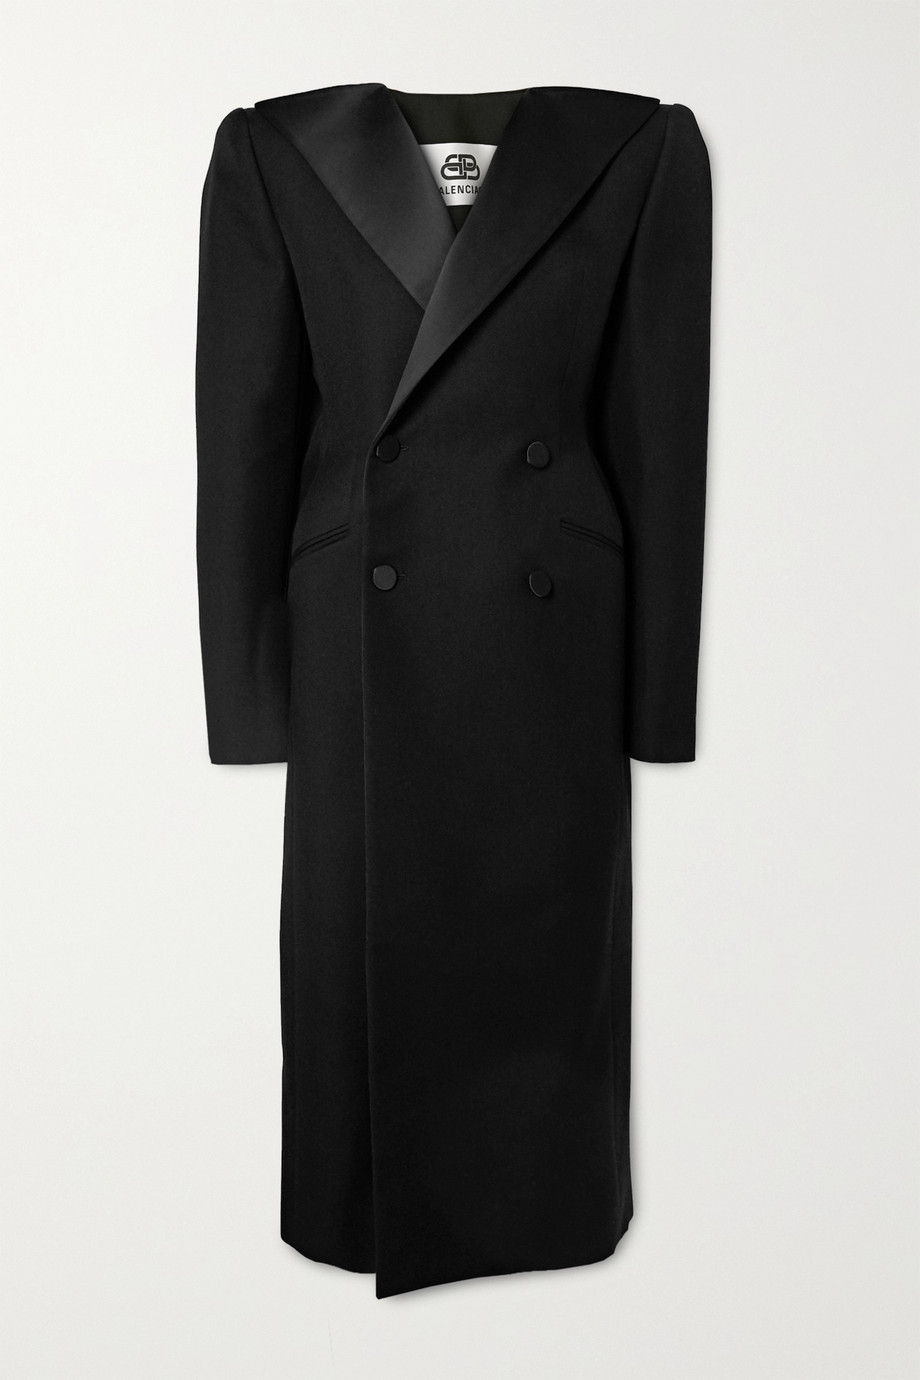 Balenciaga Satin-trimmed wool-twill coat